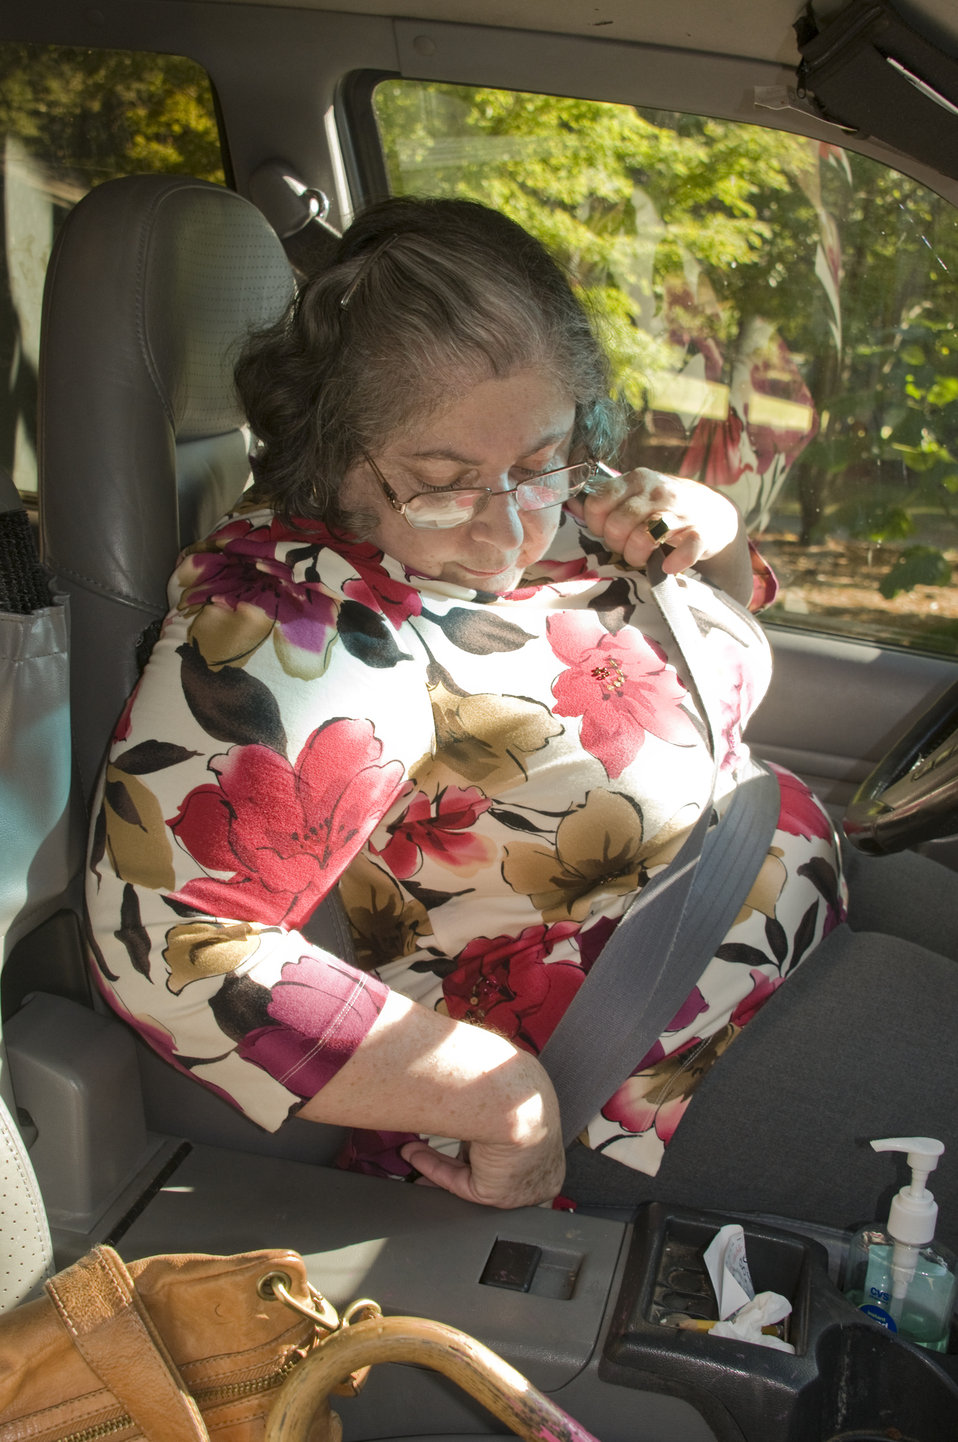 Finally, after having loaded her luggage into her vehicle's back seat area this woman, who is a rheumatoid arthritis patient, had entered th